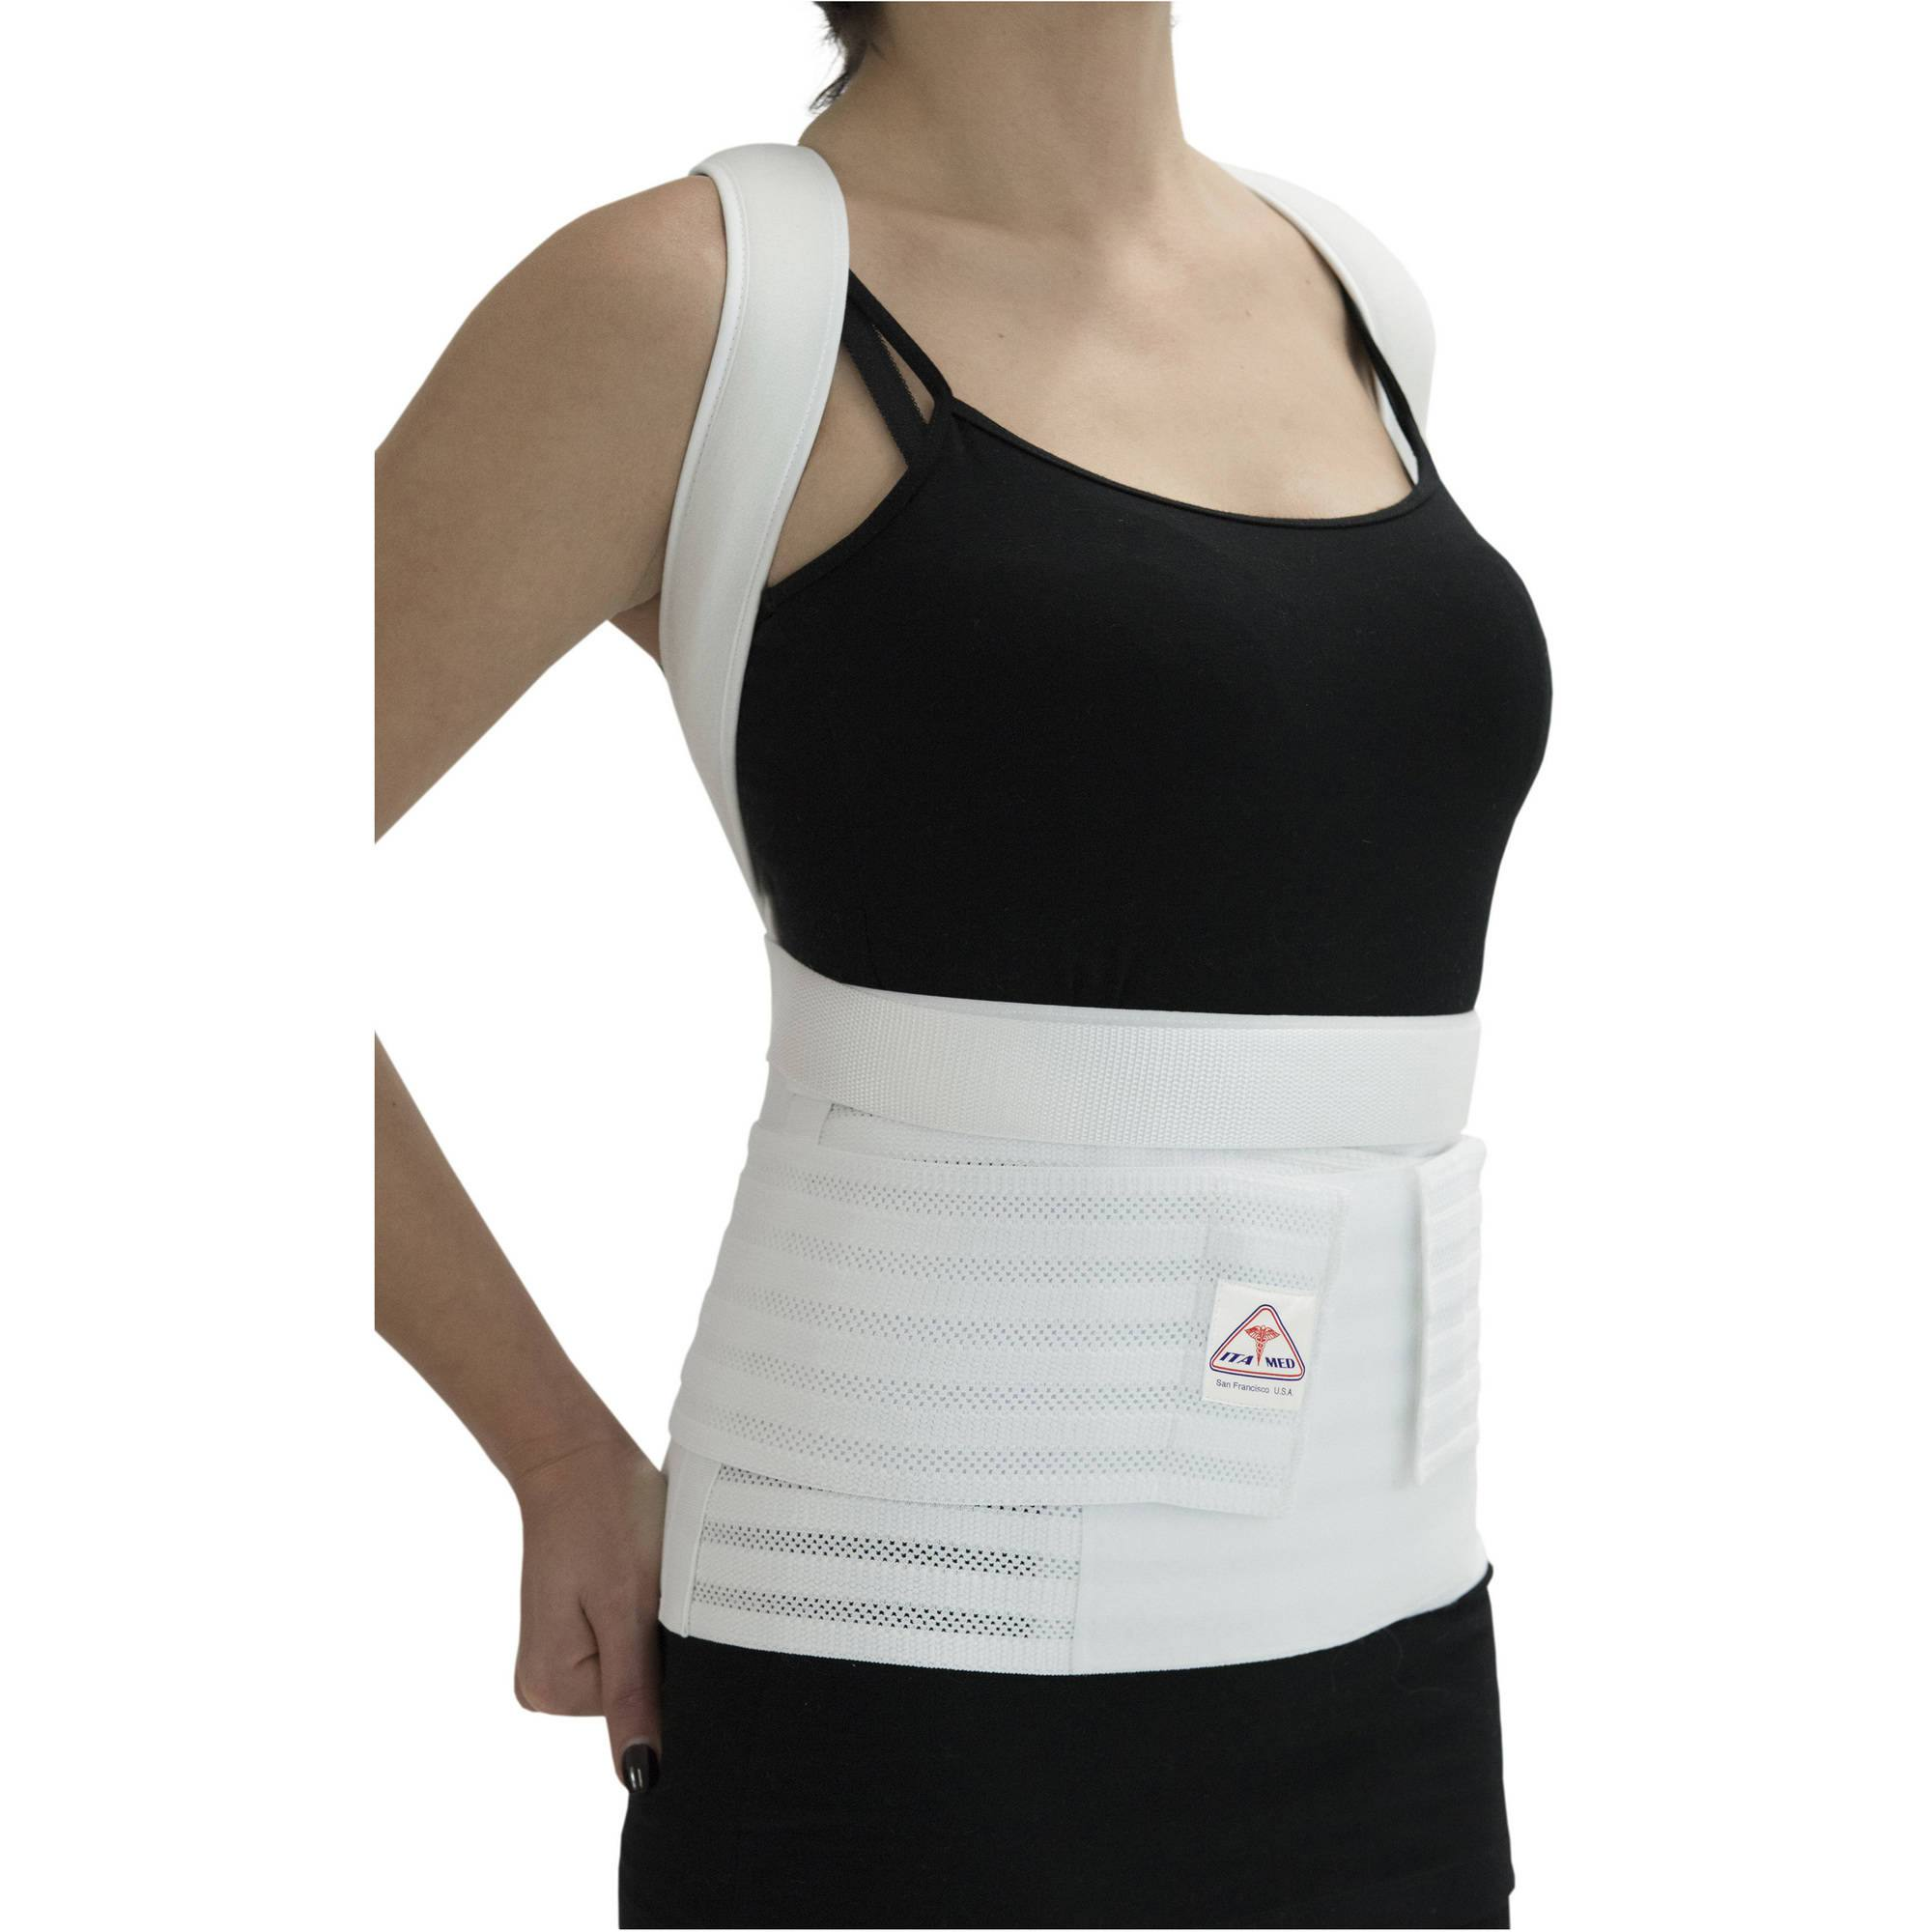 62209efc97 Best for Women  ITA-MED Posture Corrector for Women